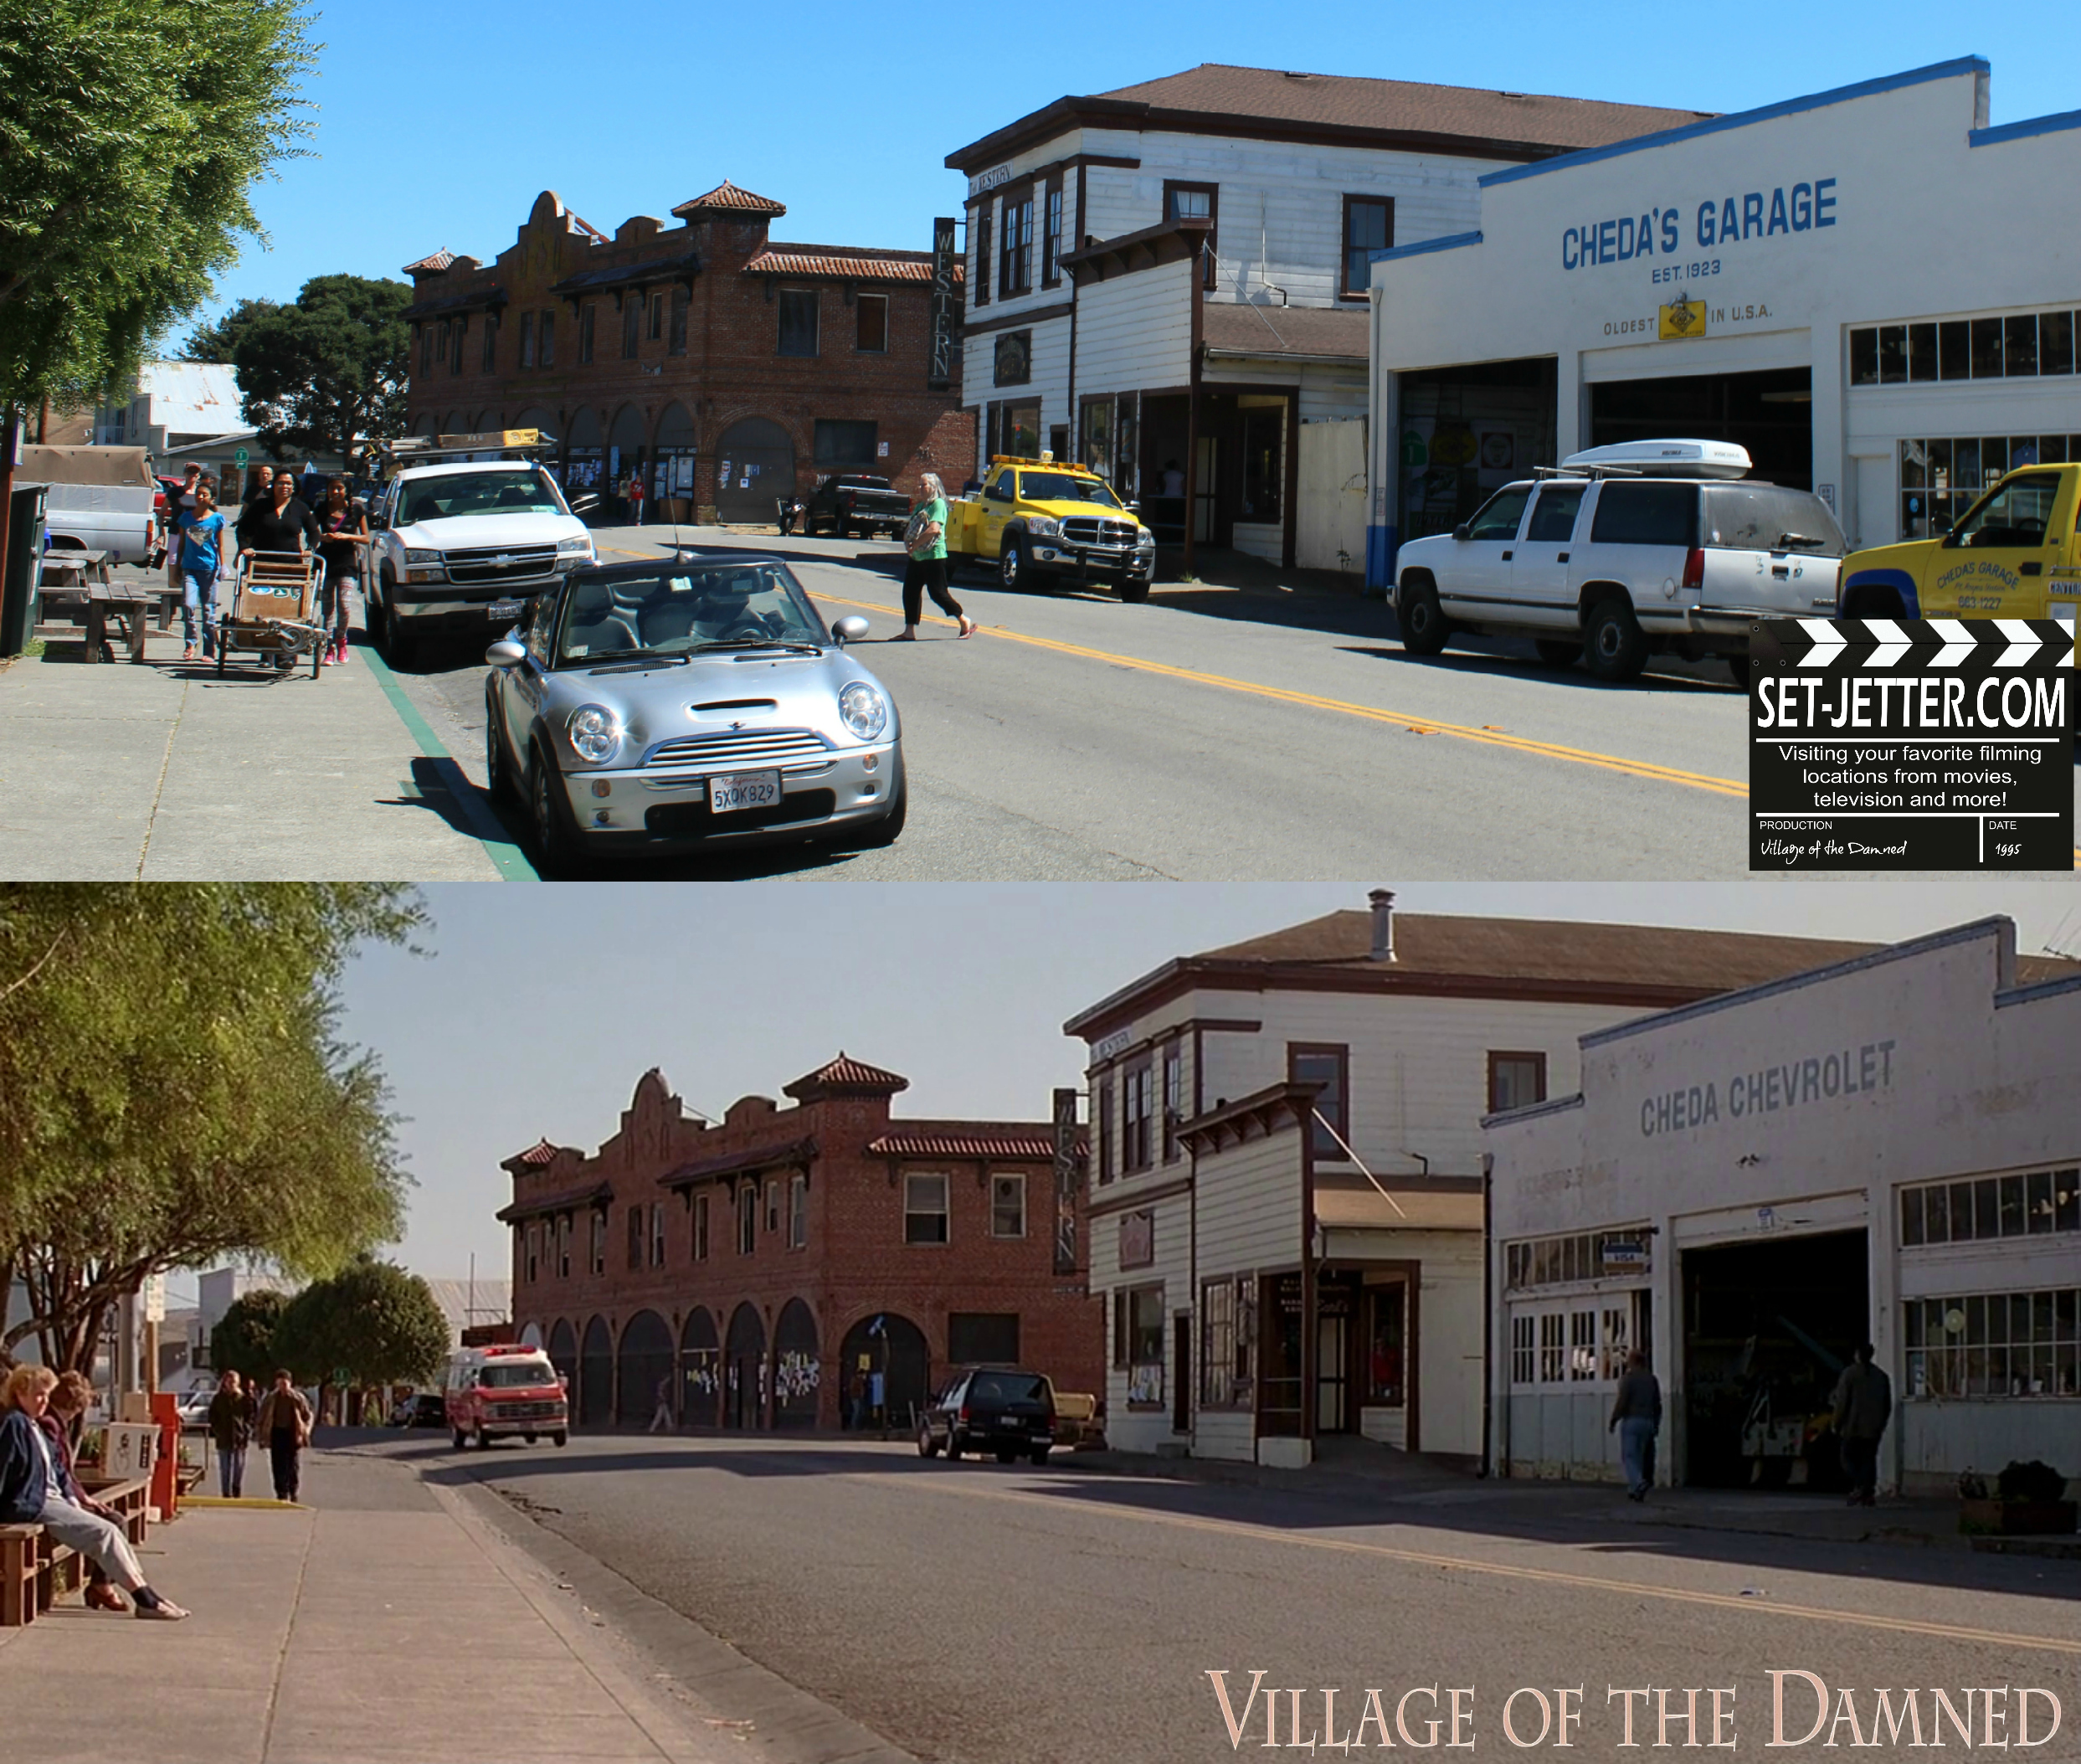 Village of the Damned comparison 207.jpg